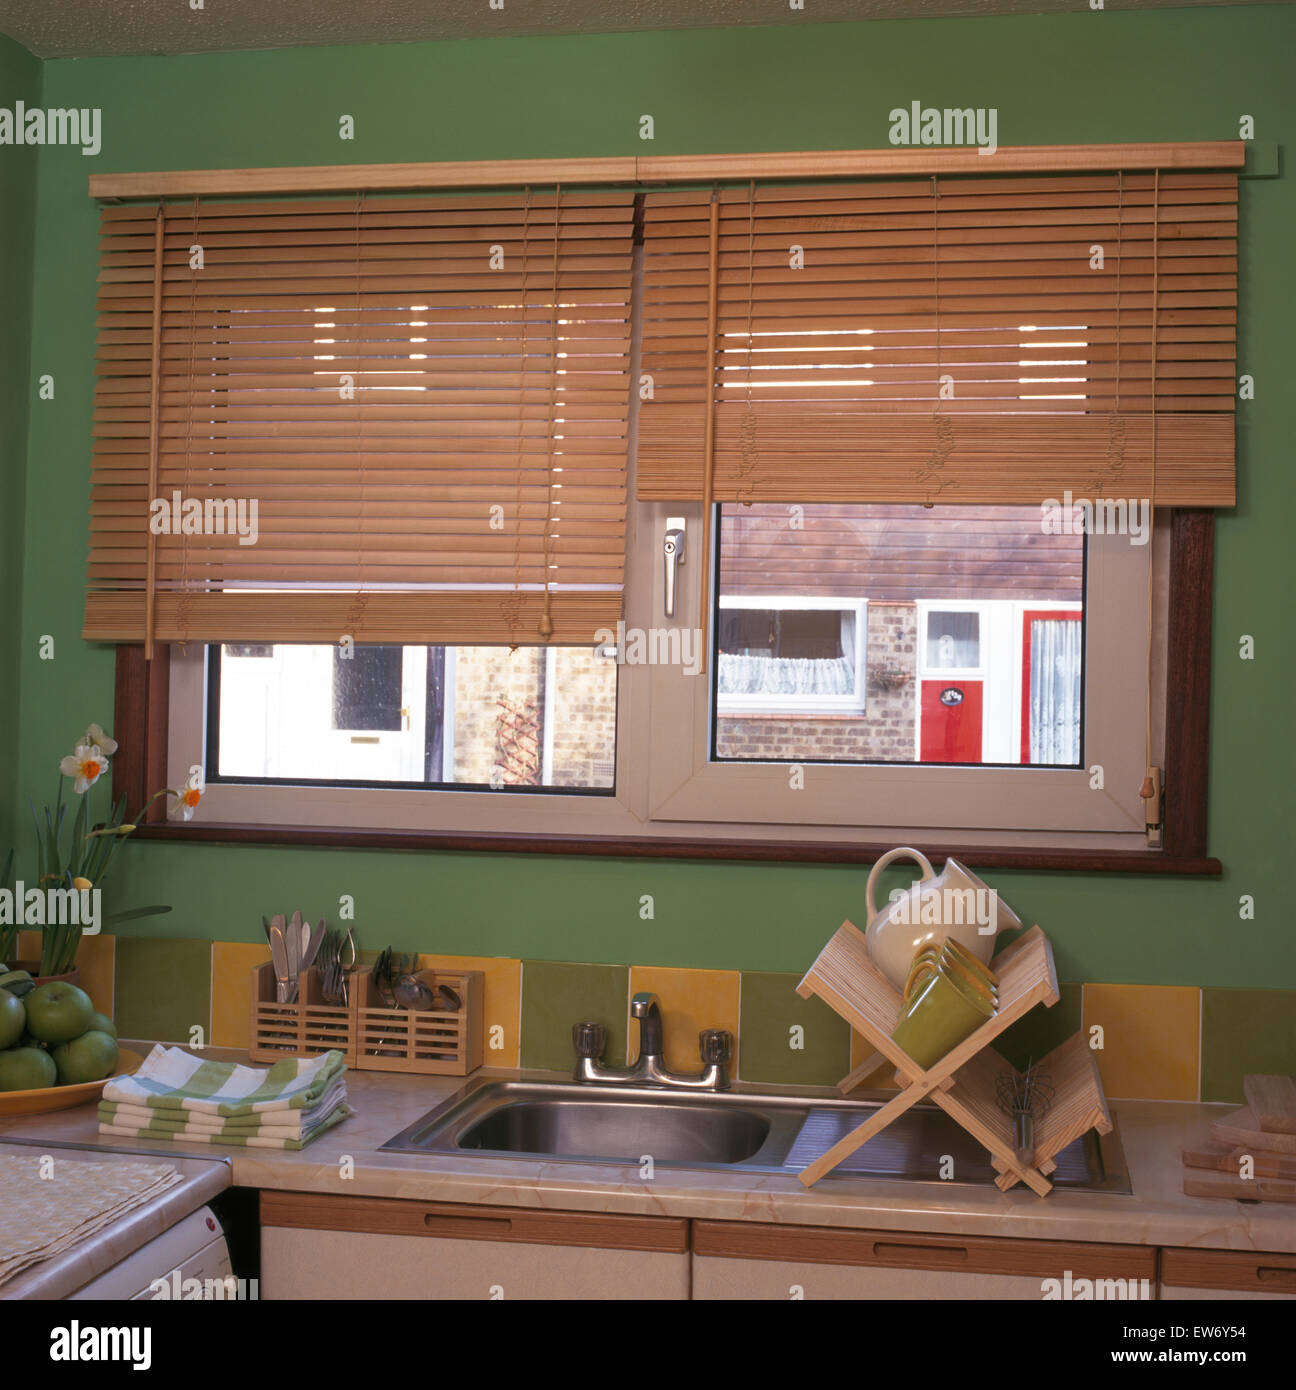 Wooden Blind On Window Above Sink In Economy Style Nineties Kitchen Stock Photo Alamy